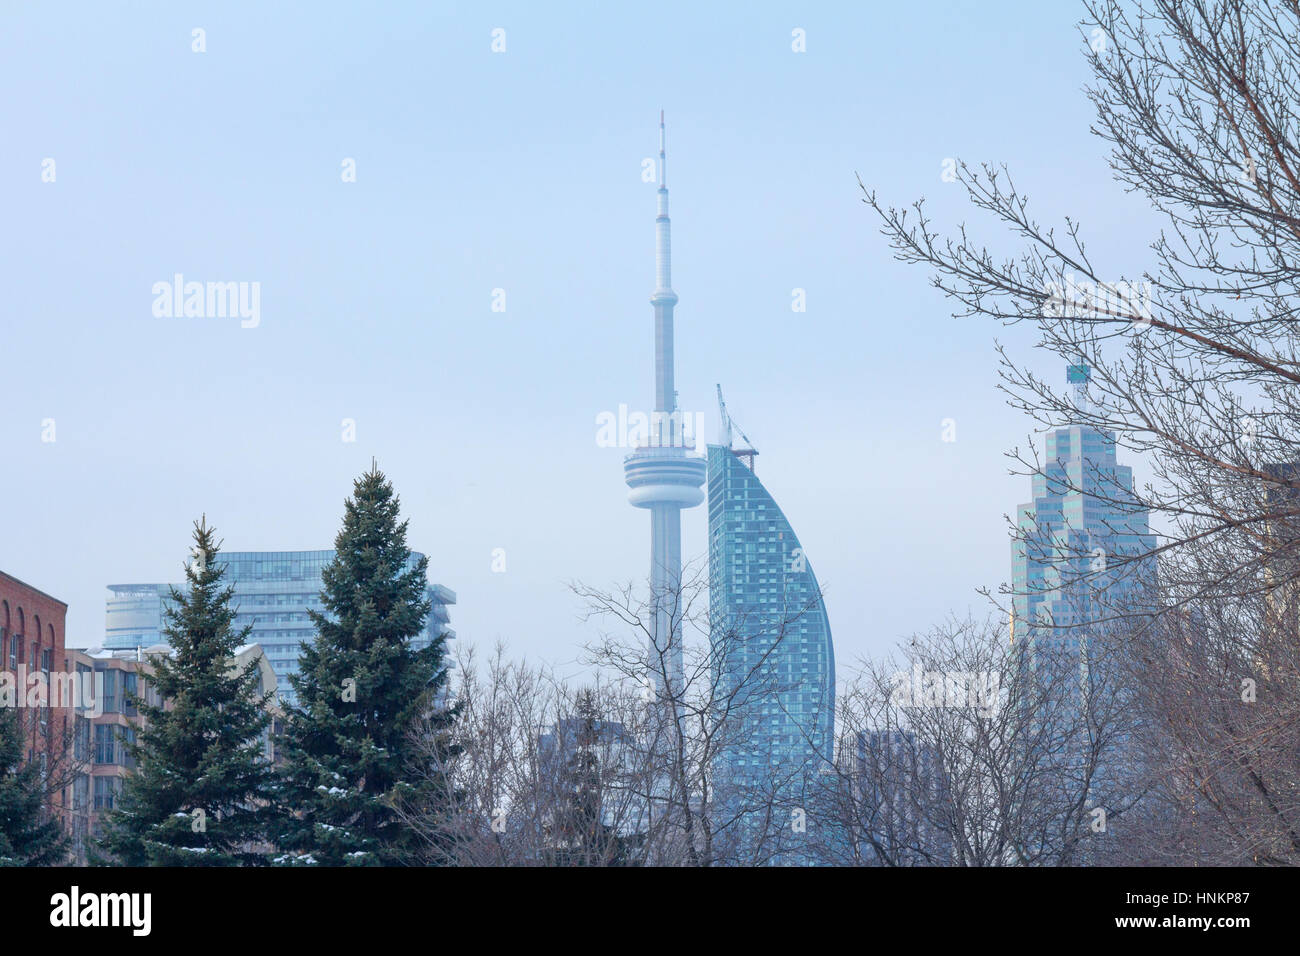 TORONTO, CANADA - DECEMBER 21: CN tower (Canadian National) in a cold morning of winter seen from a residential - Stock Image